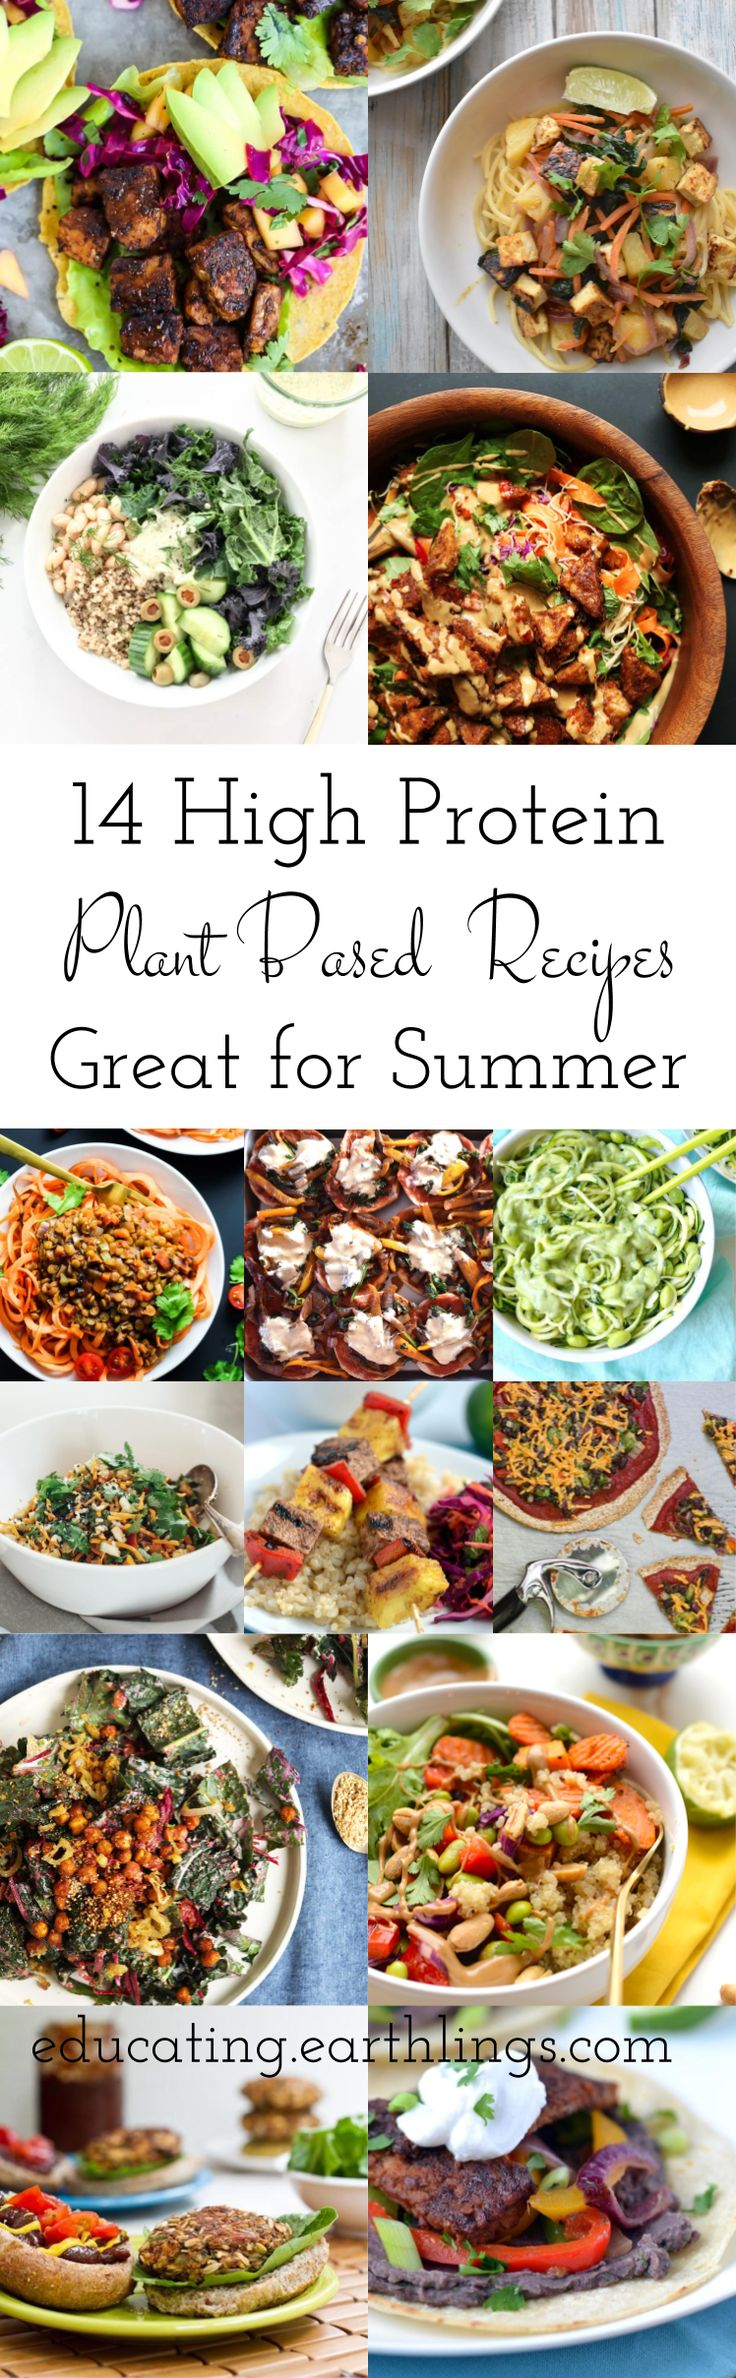 high protein plant based recipe round up for summer, summer recipes, vegan recipes, plant based recipes, high protein recipes